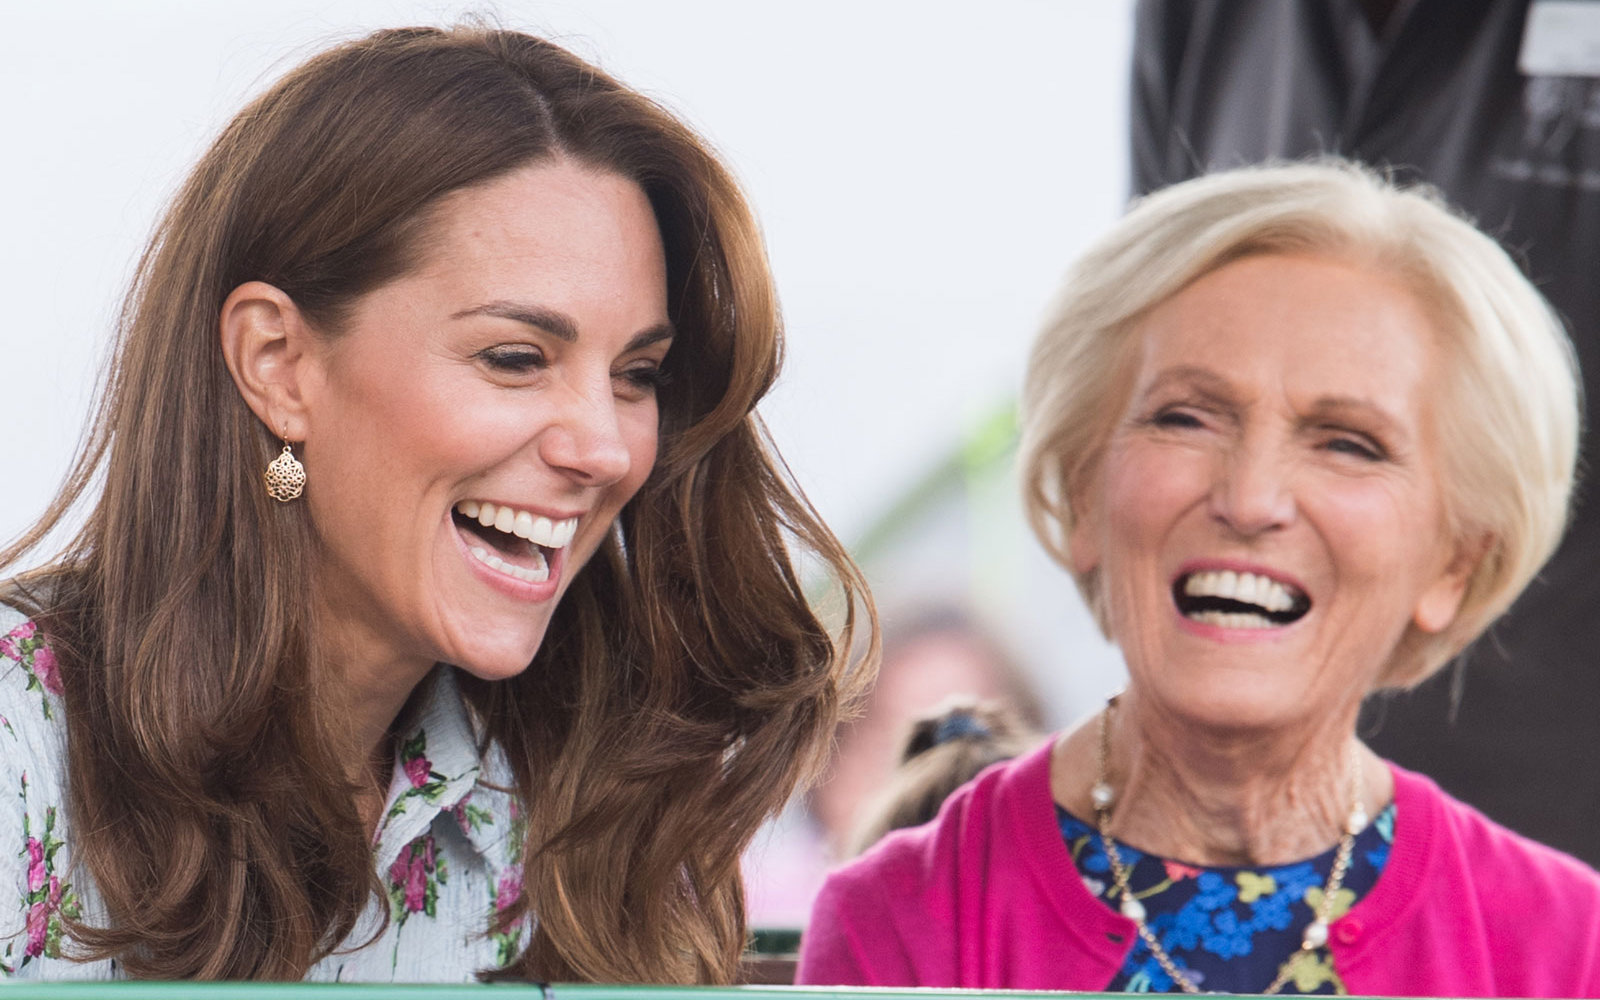 Kate Middleton is teaming up with Mary Berry to film a holiday cooking TV special